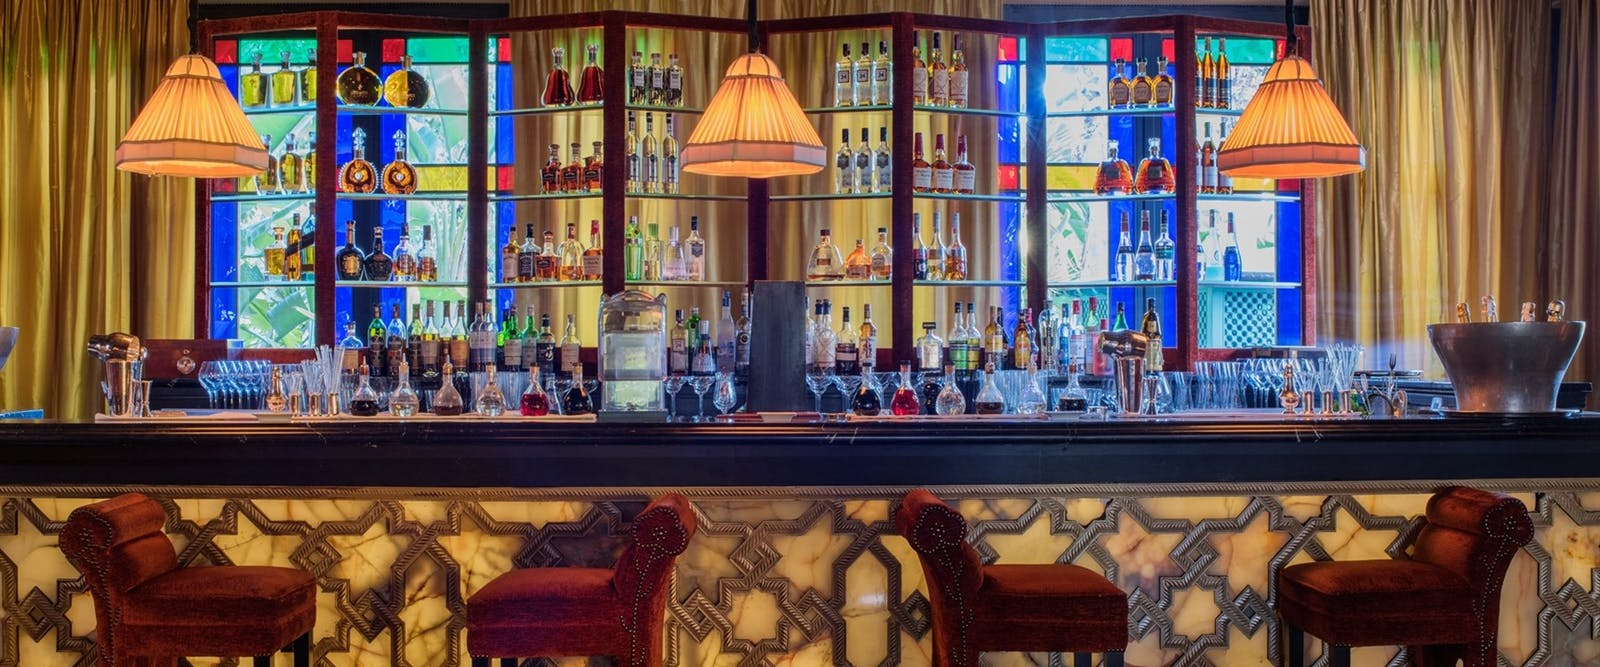 Italian Bar at La Mamounia, Marrakech, Morocco